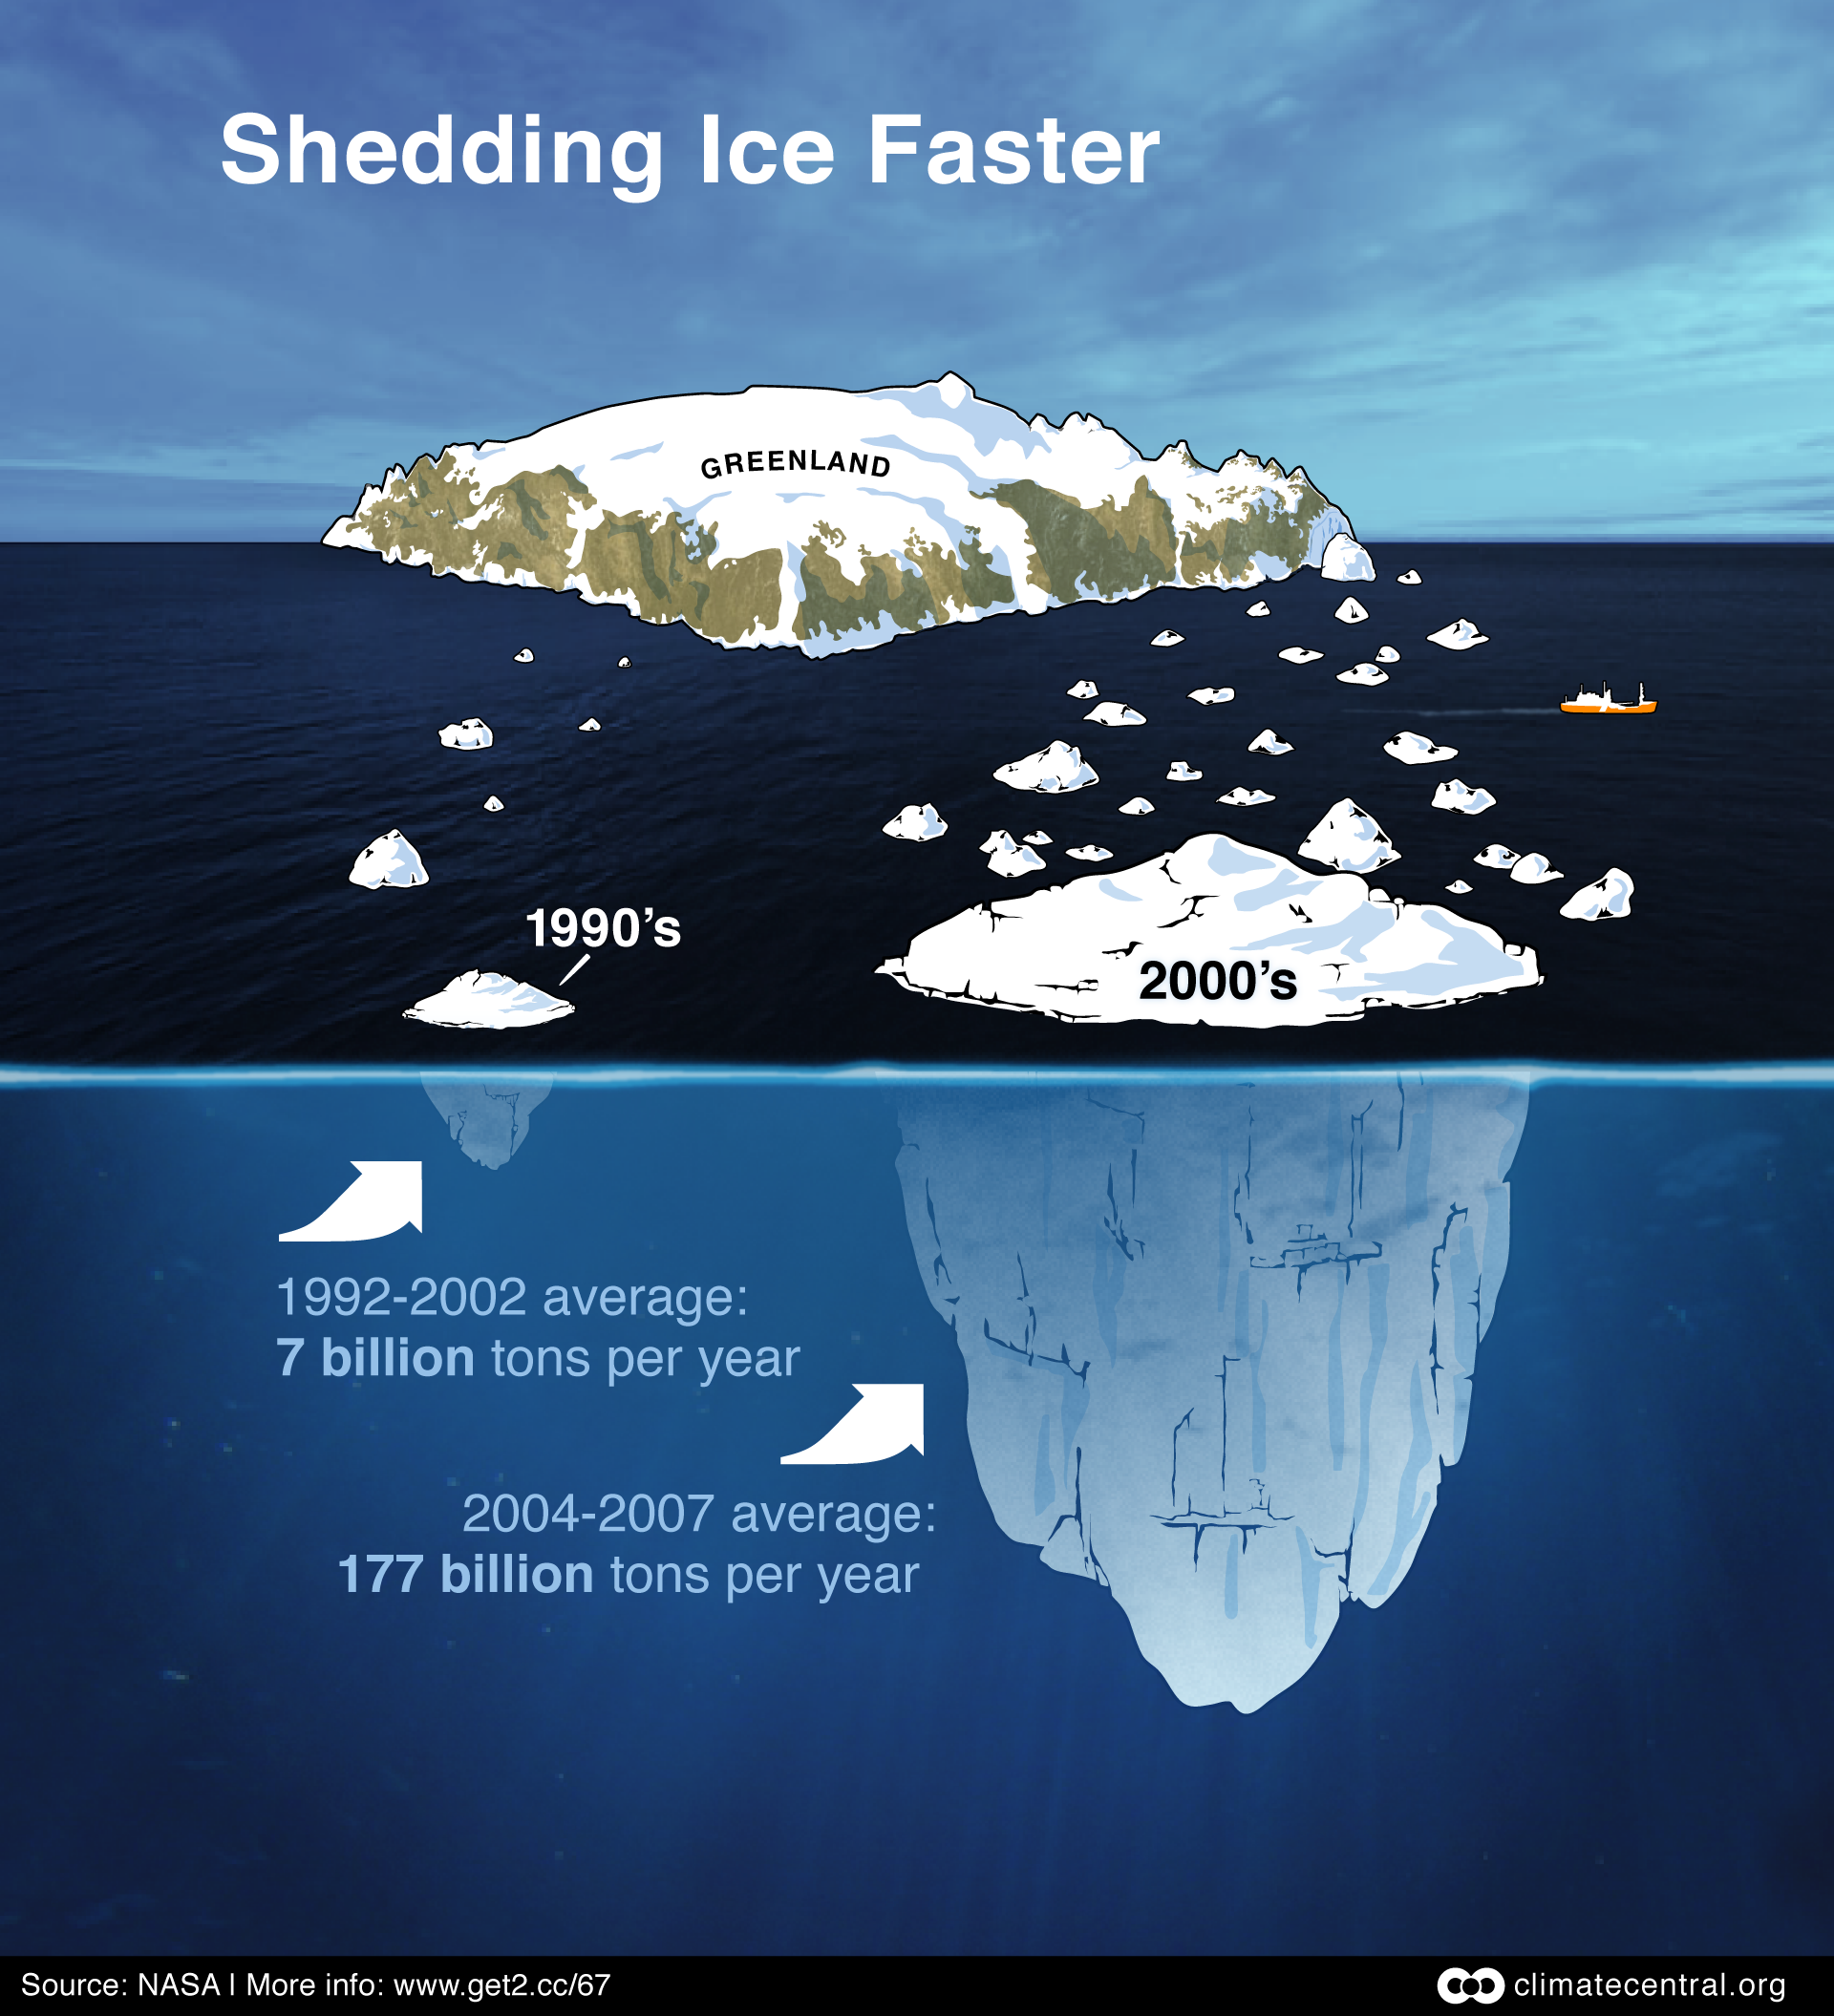 Comparative rates of ice shedding in Greenland.